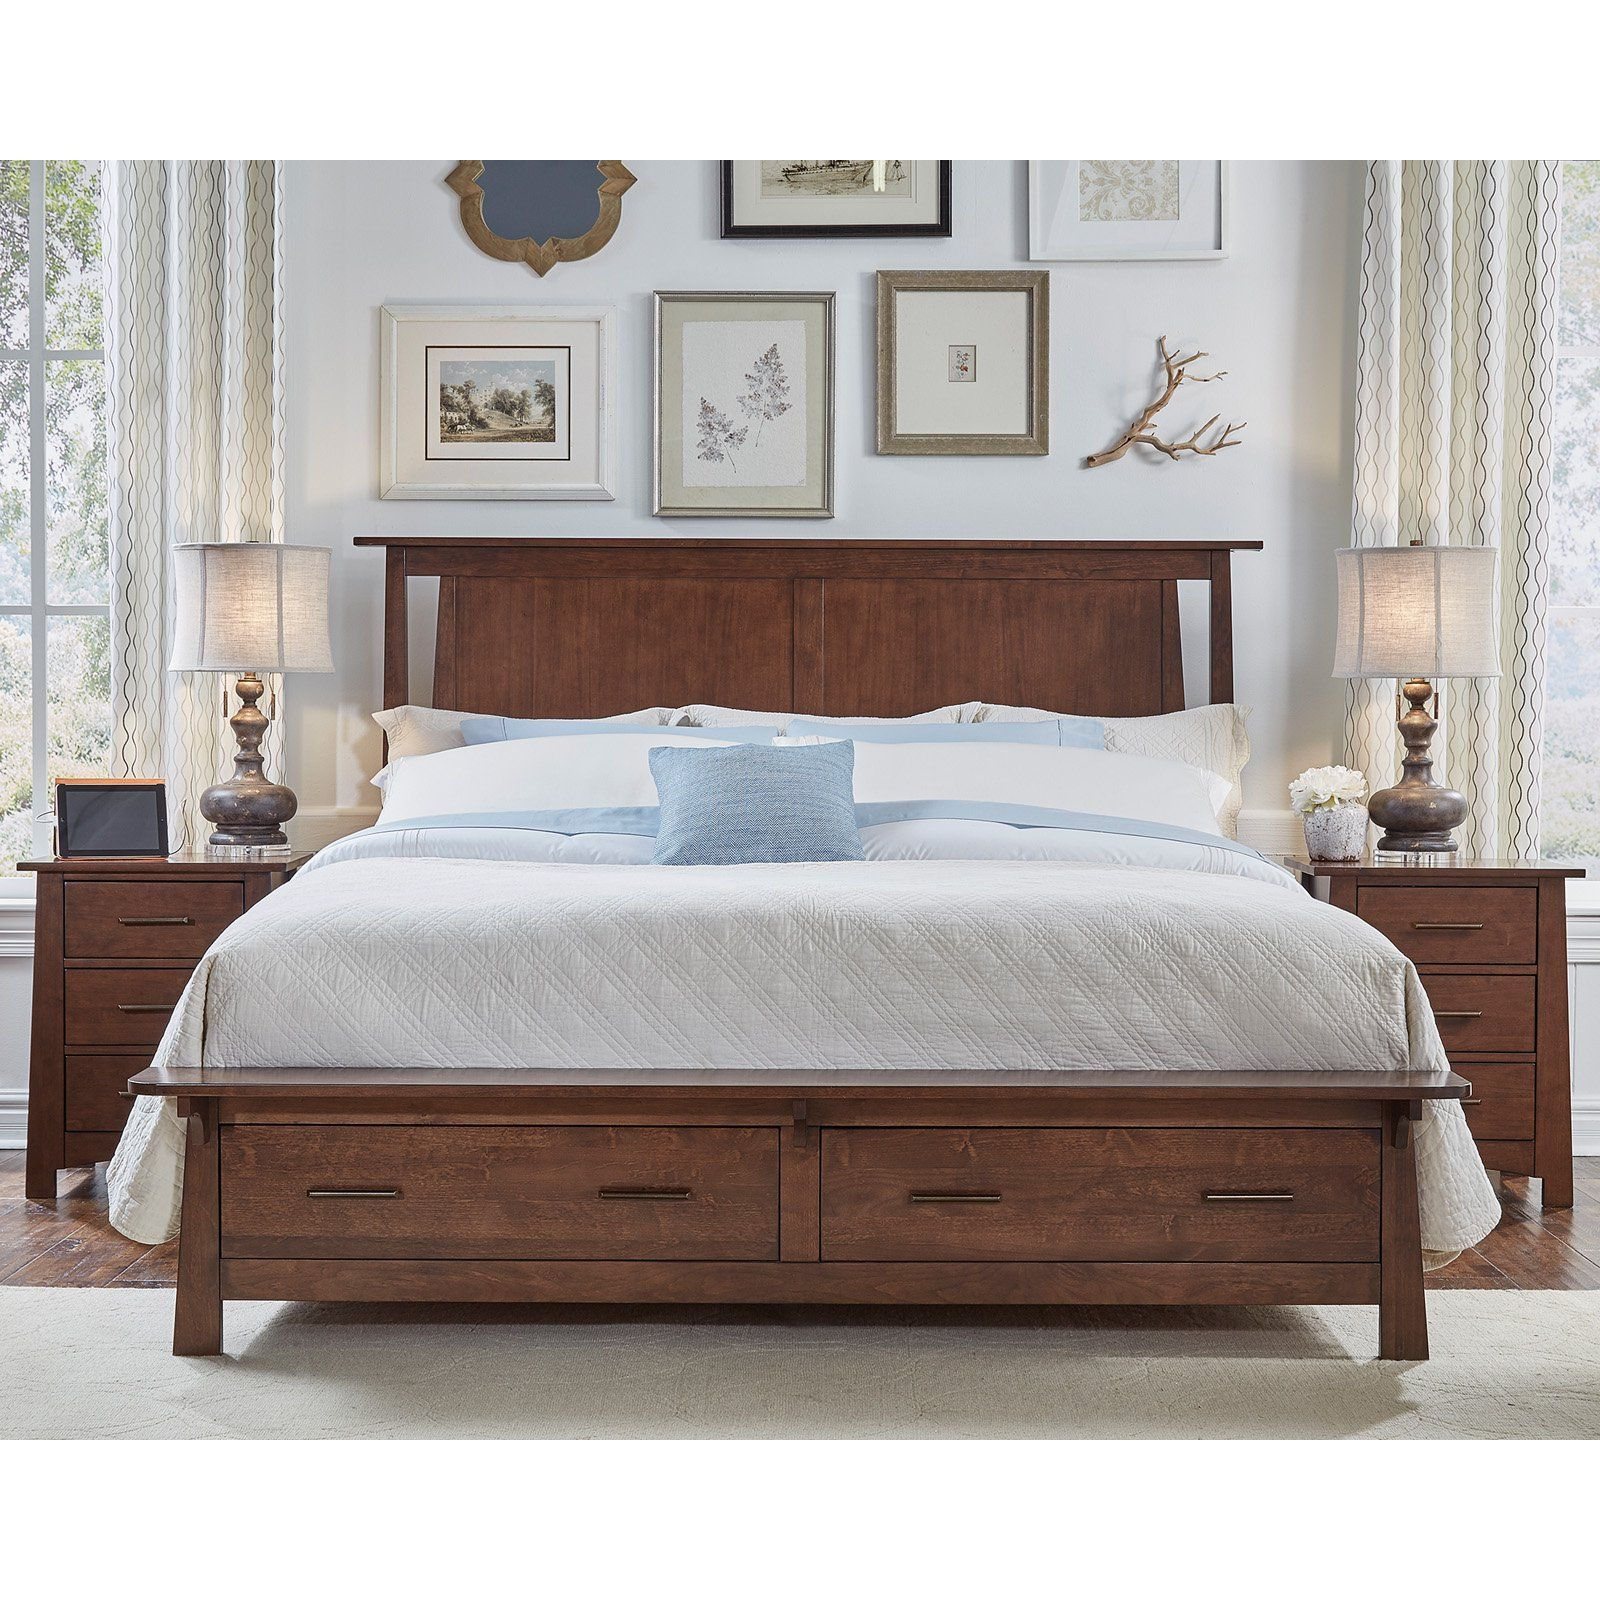 I Found A Manoticello Queen Bedroom Collection At Big Lots For Less Find More At Biglots Com Bedroom Collection Platform Bedroom Sets Furniture